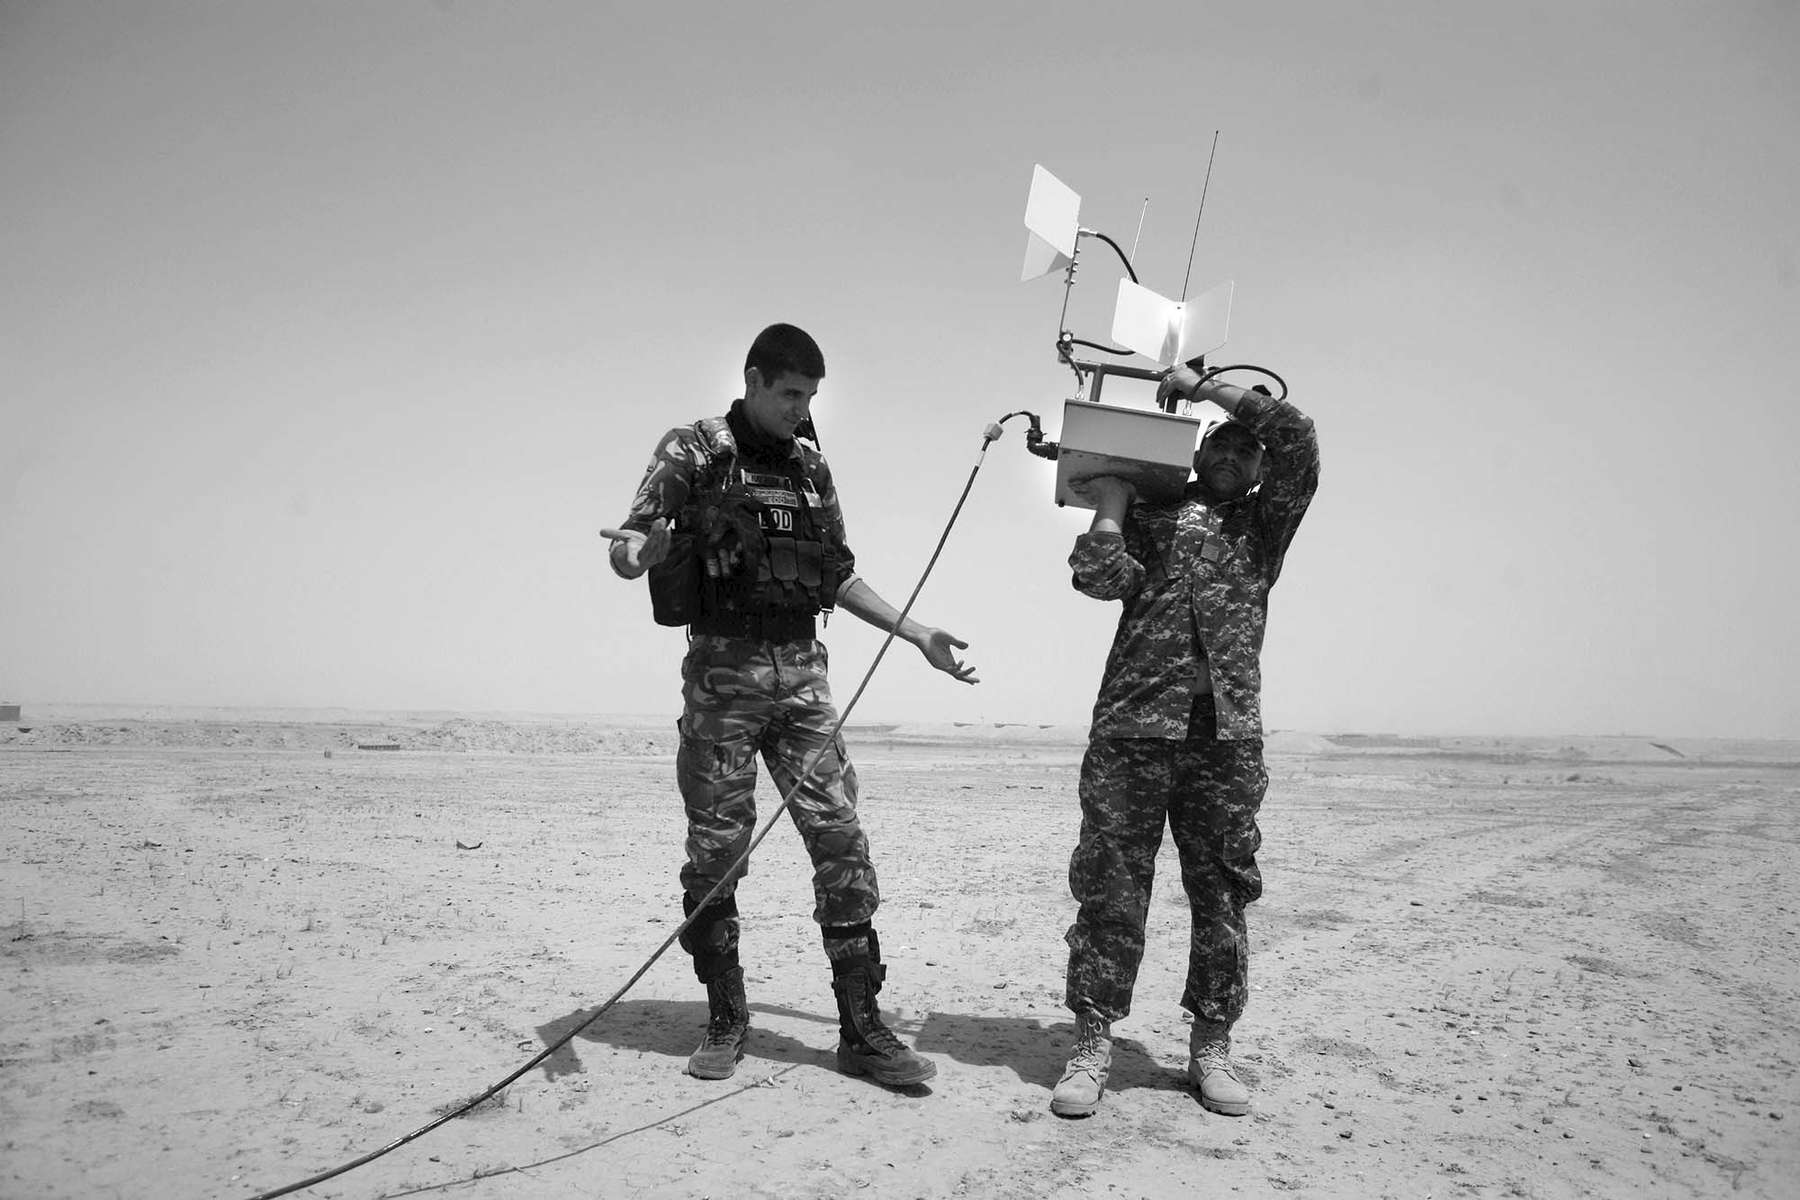 Nawfal Hotaf, left, wonders the best way to hold the antenna to operate the robot while working with Ahmad Shalal, right as they work with the Navy's Explosive Ordnance Disposal Mobile Unit 2 in Iraq at COB Speicher during a training exercise. Both men are with the Iraqi Police and are working with explosives removal in Iraq.